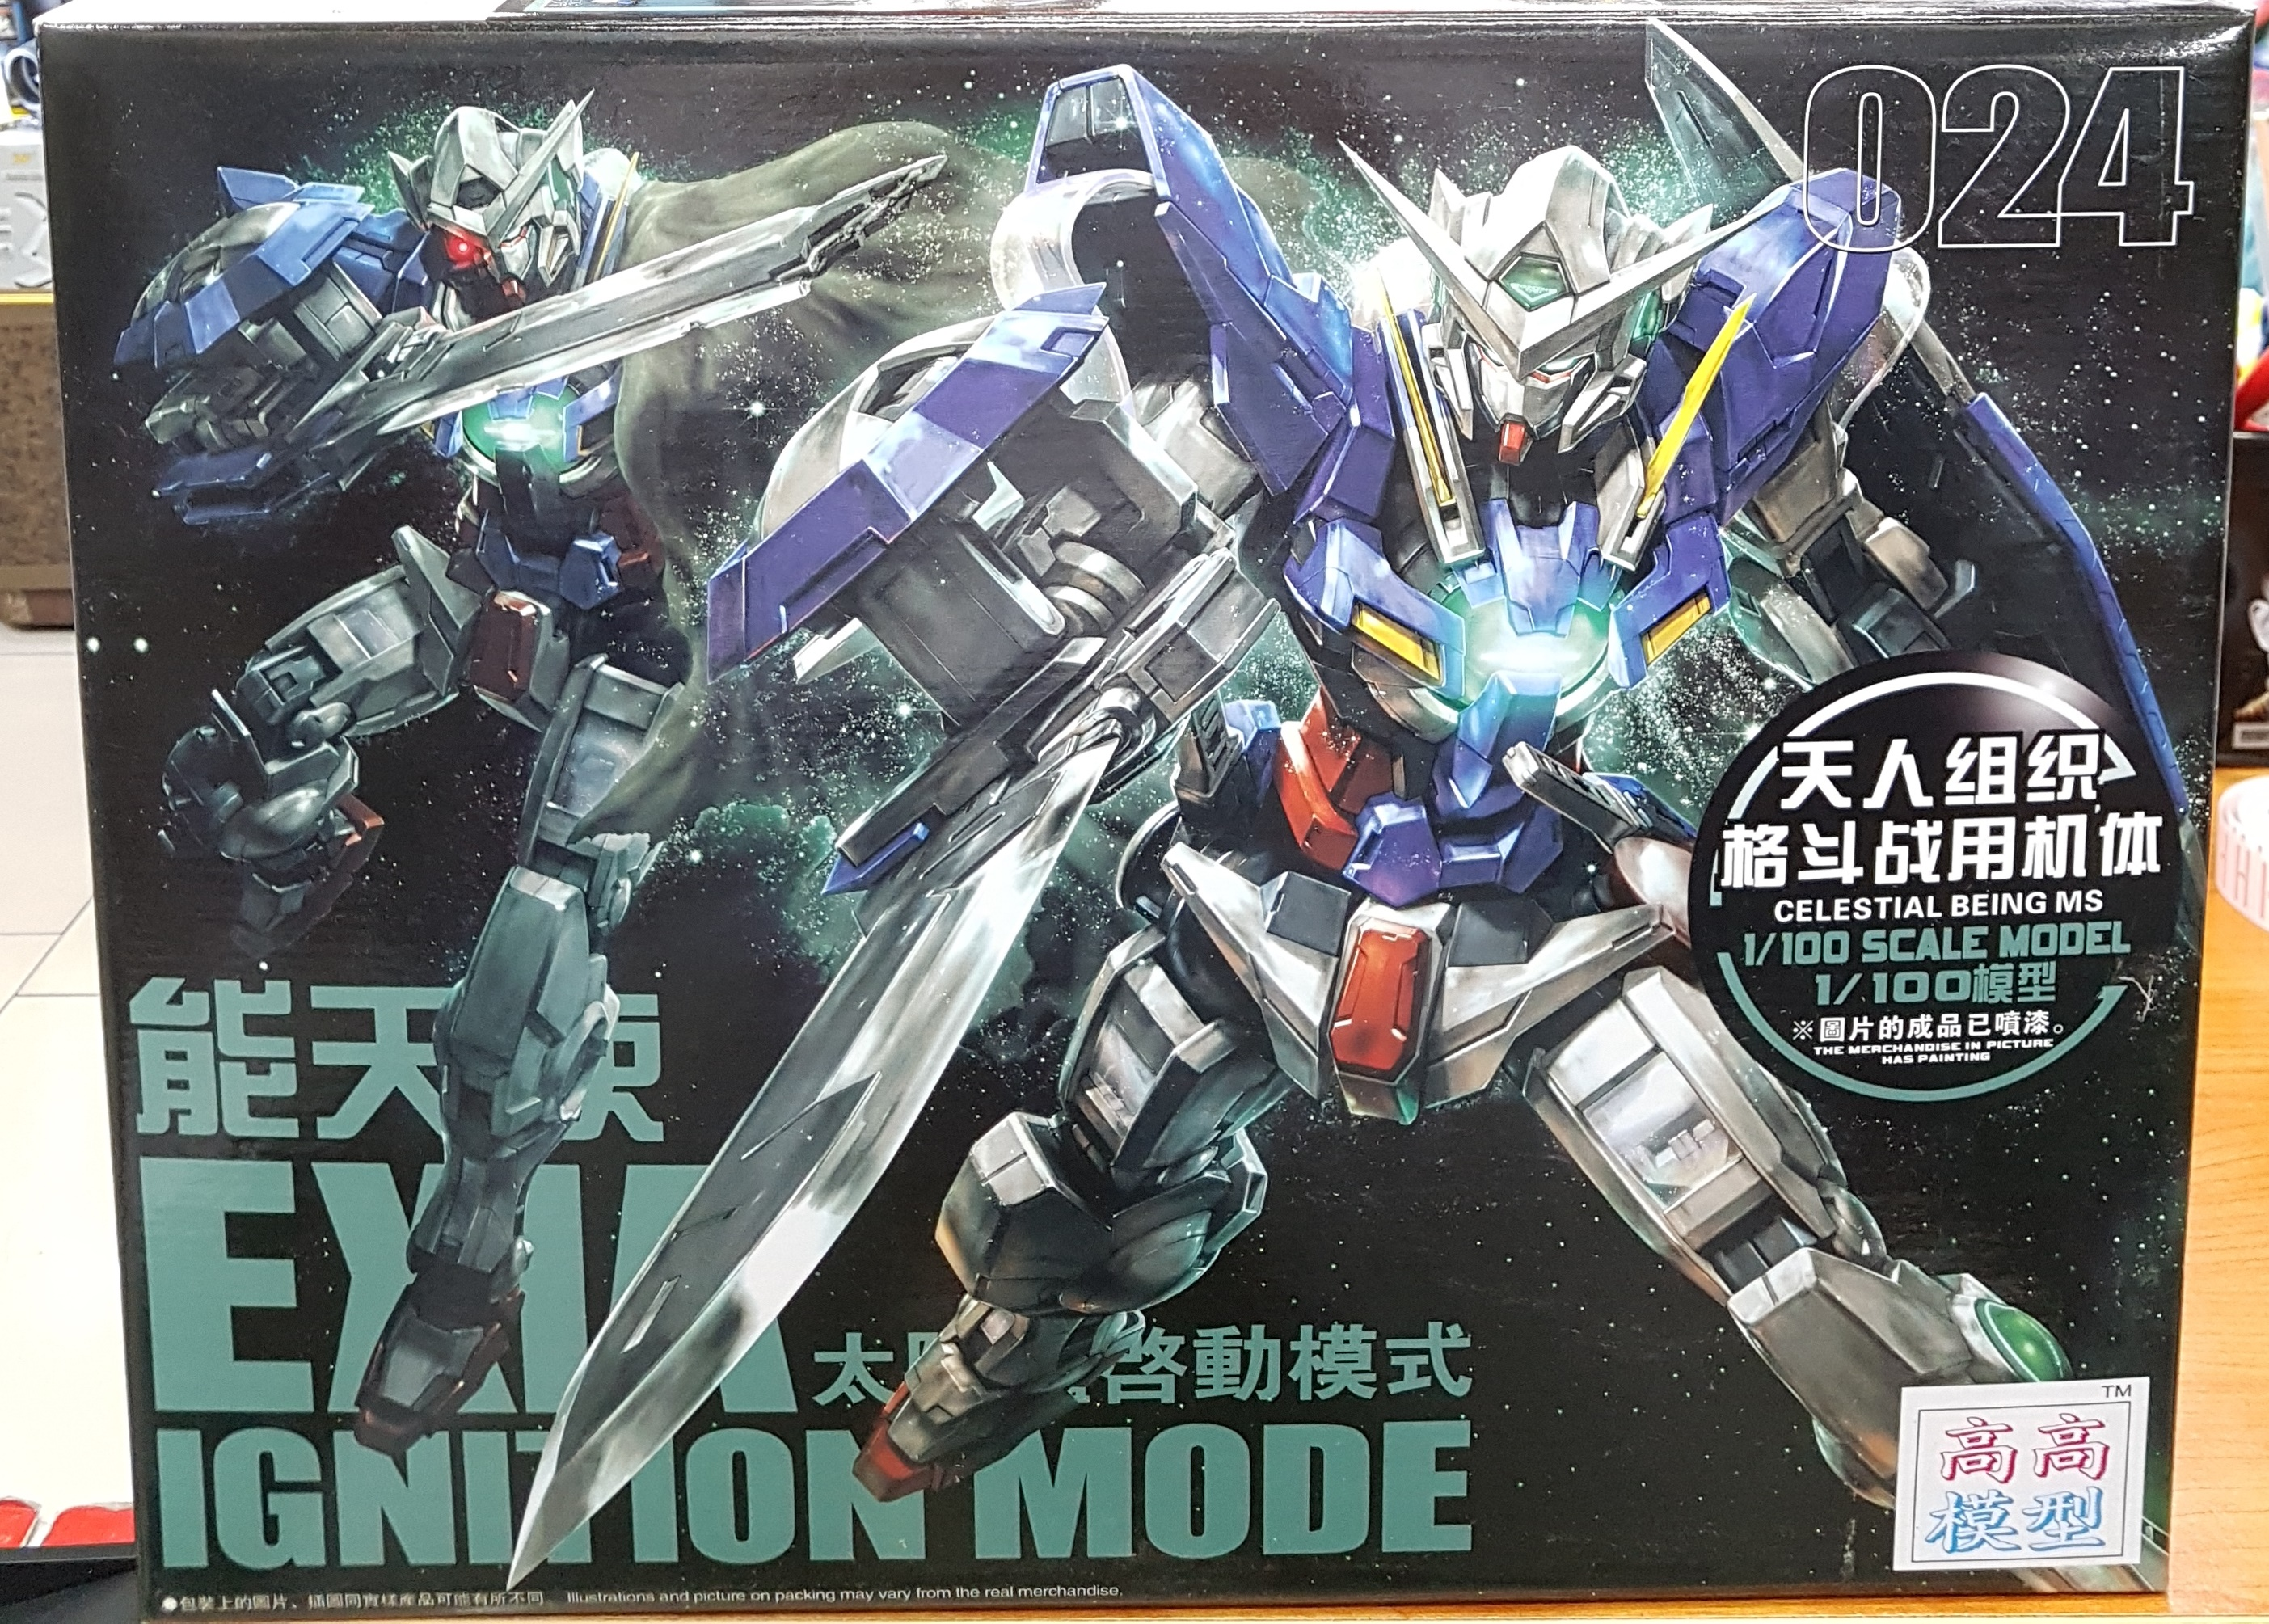 EXIA IGNITION MODE